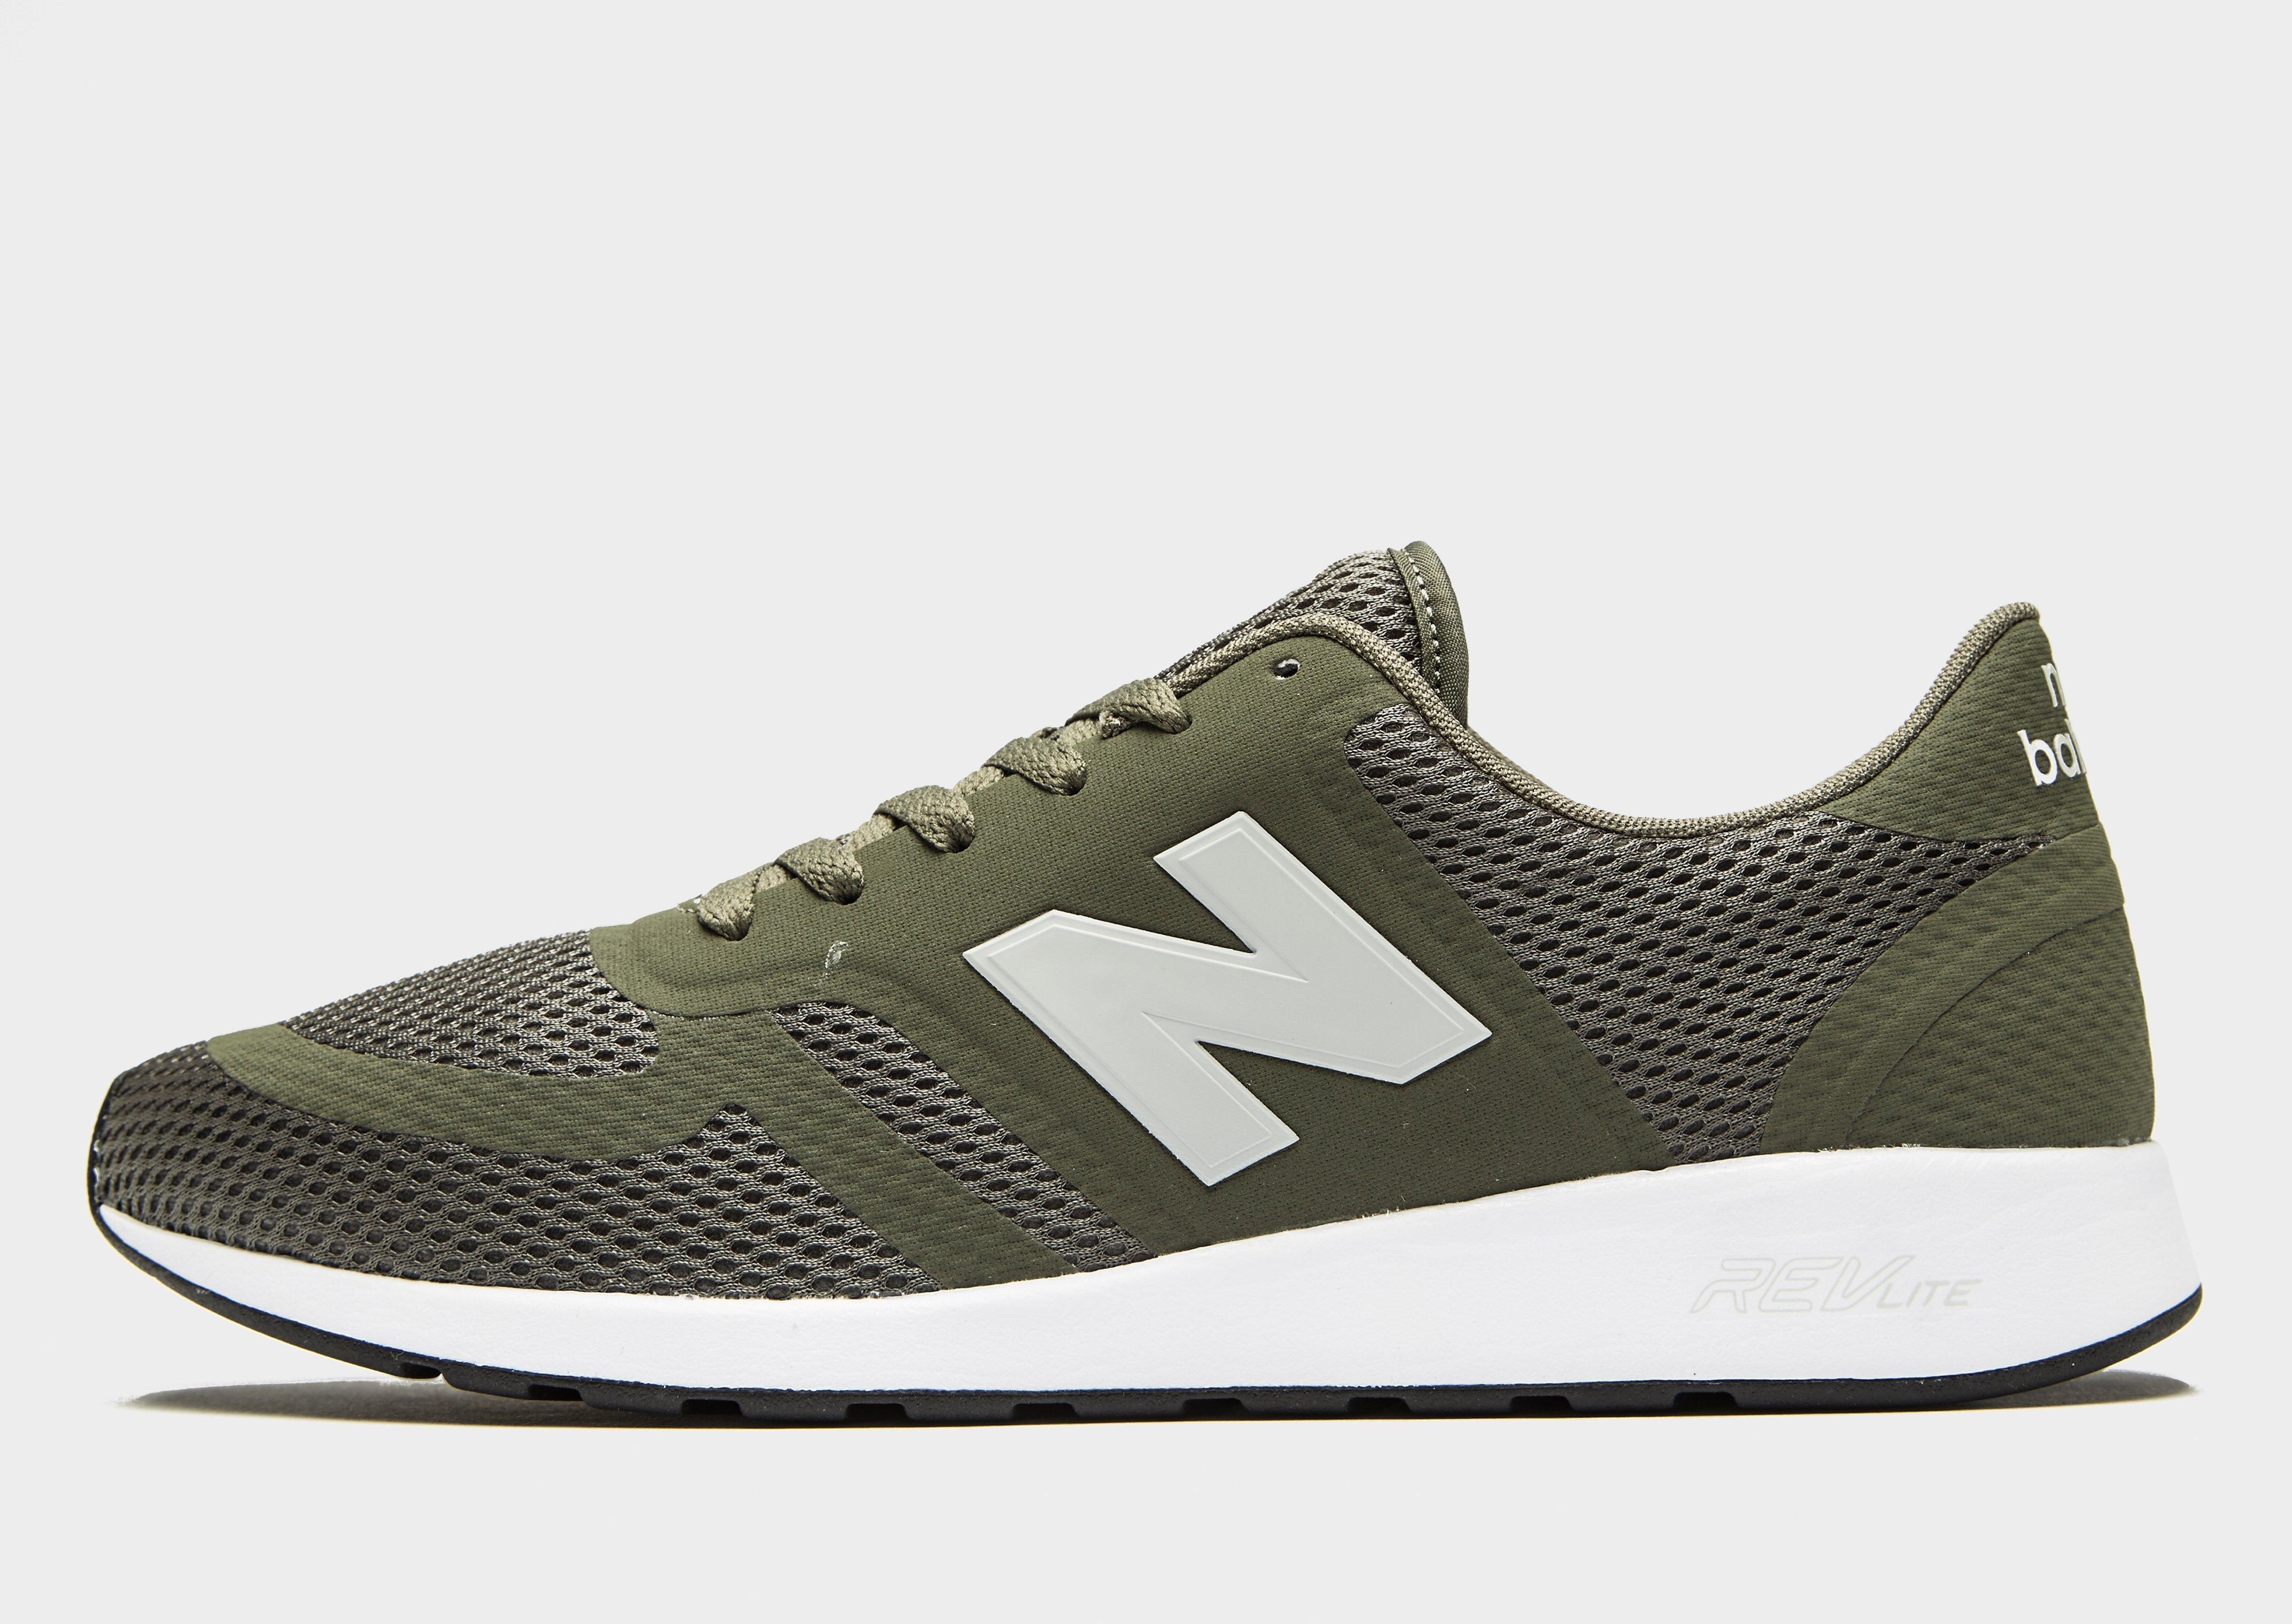 Lyst - New Balance 420 Knit in Green for Men - Save 43%